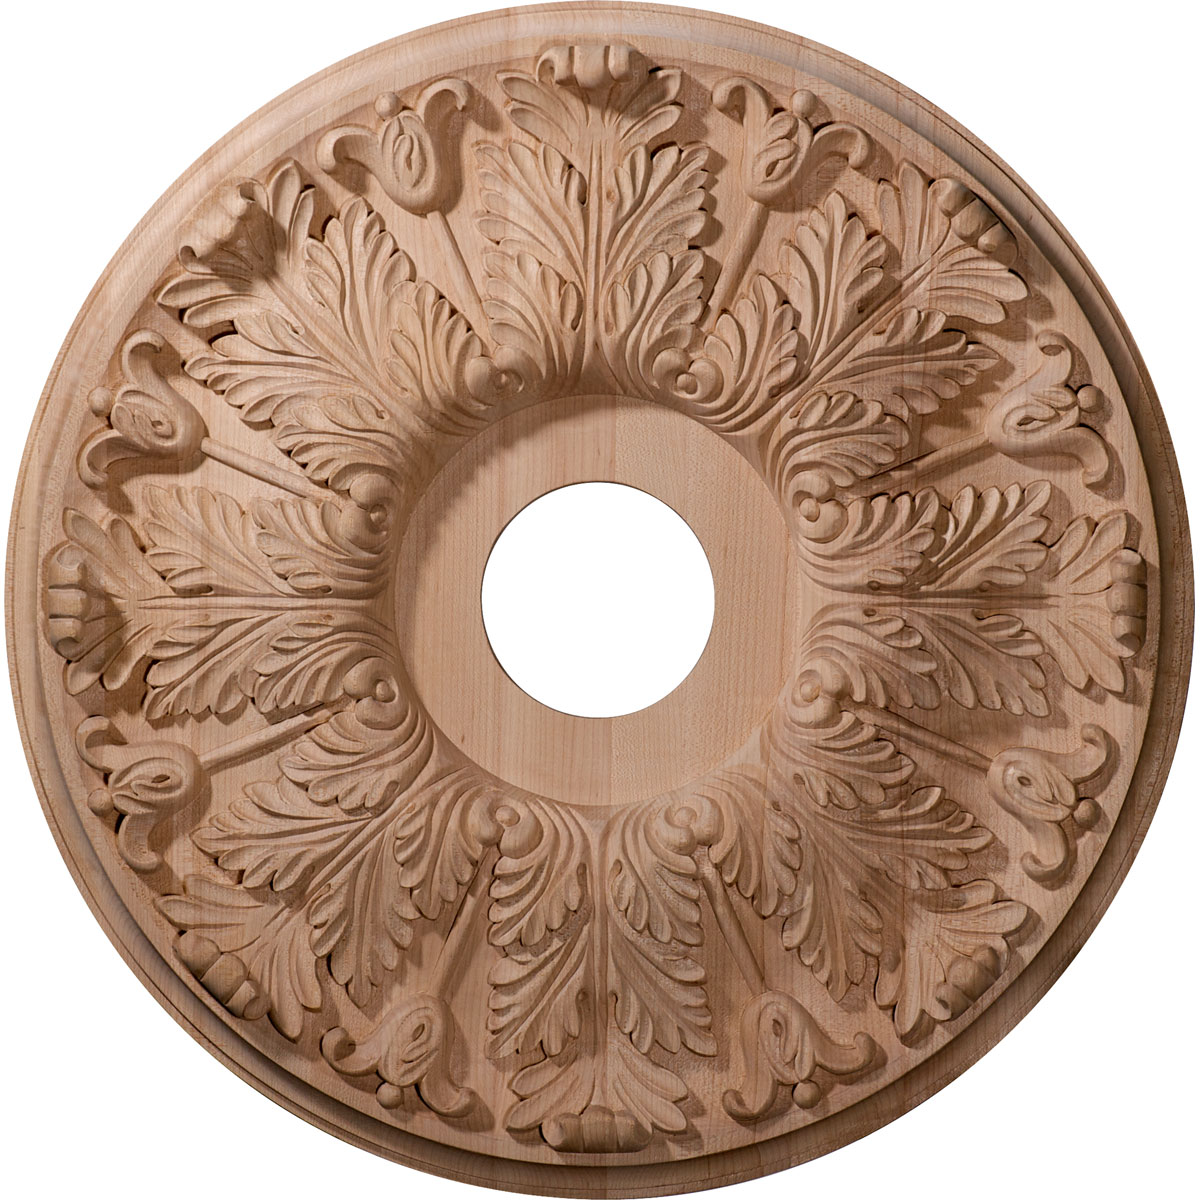 "16""OD x 3 7/8""ID x 1 1/8""P Carved Florentine Ceiling Medallion, Cherry (Fits Canopies up to 5 3/8"")"